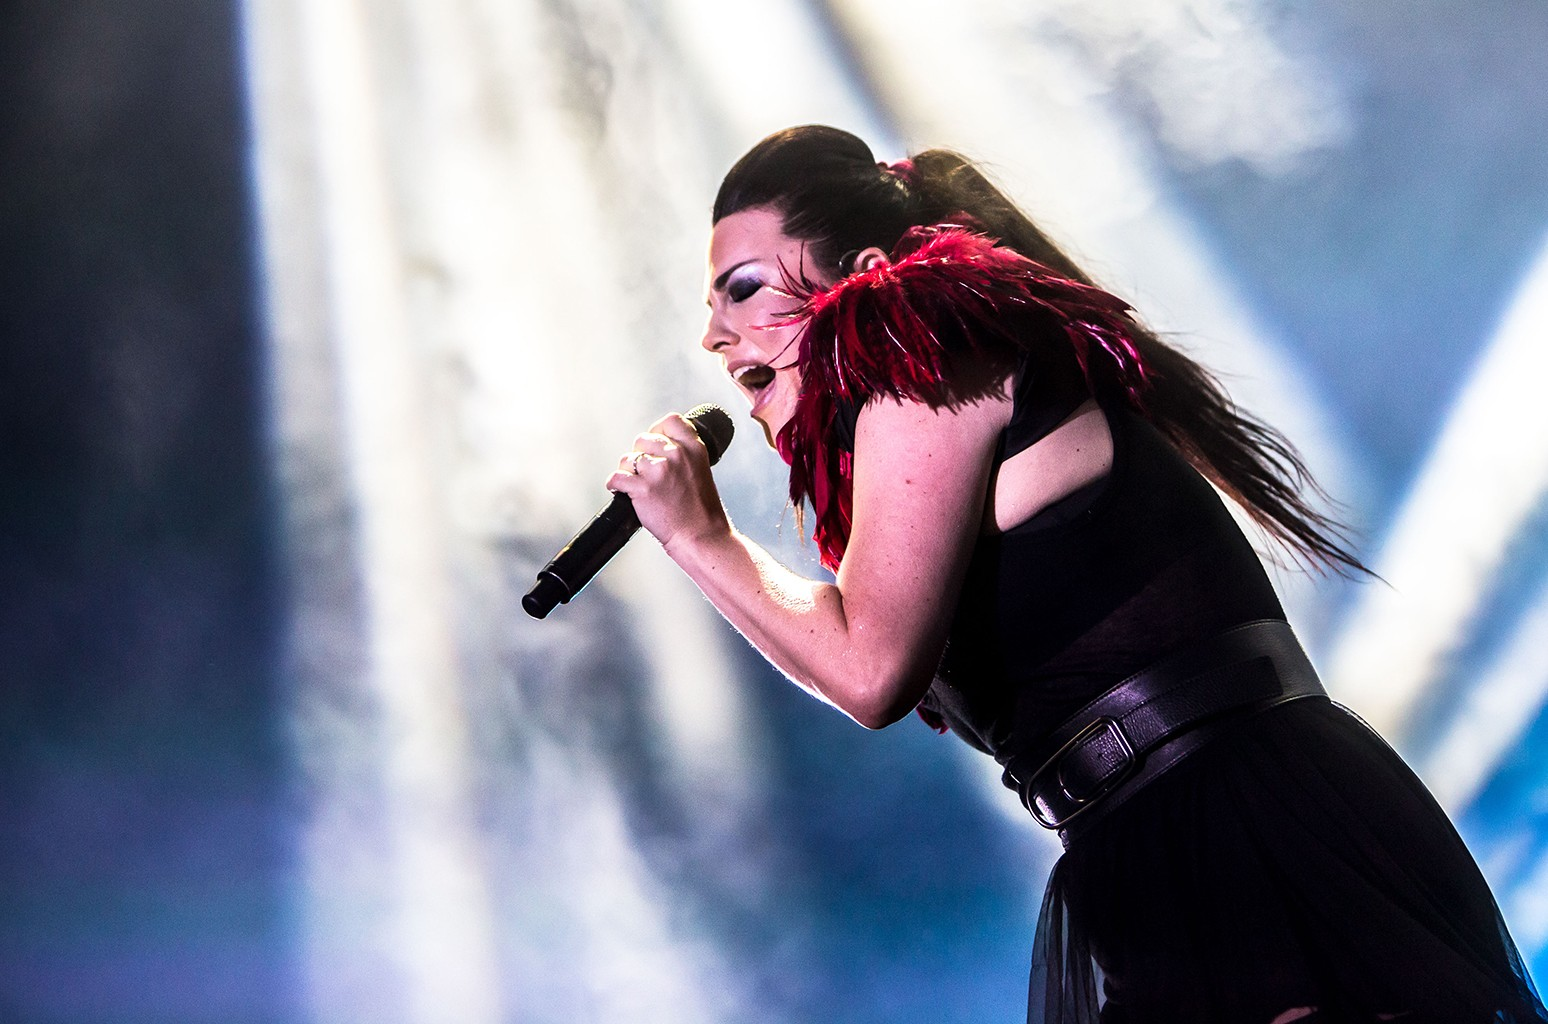 Amy Lee of Evanescence, 2017